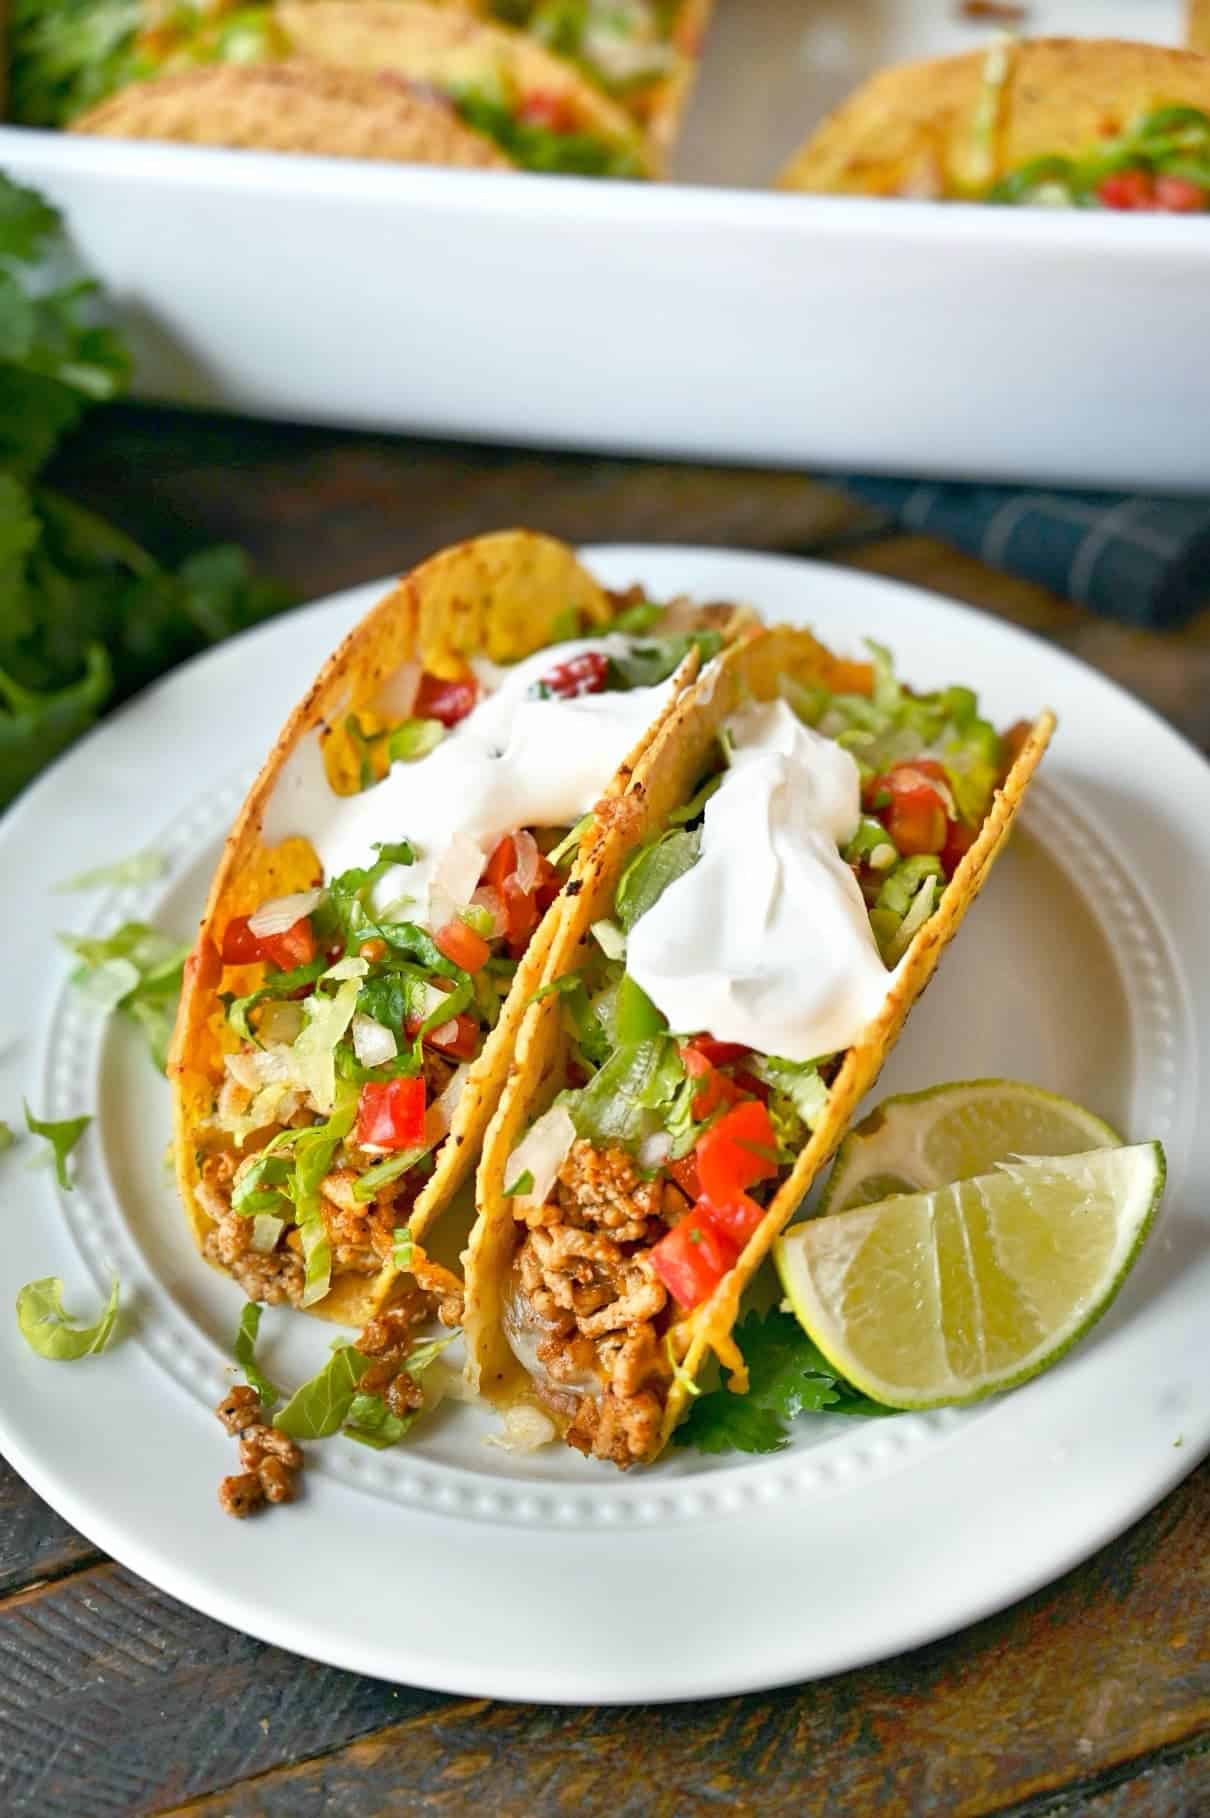 Two baked chicken tacos on a white plate with two lime slices.